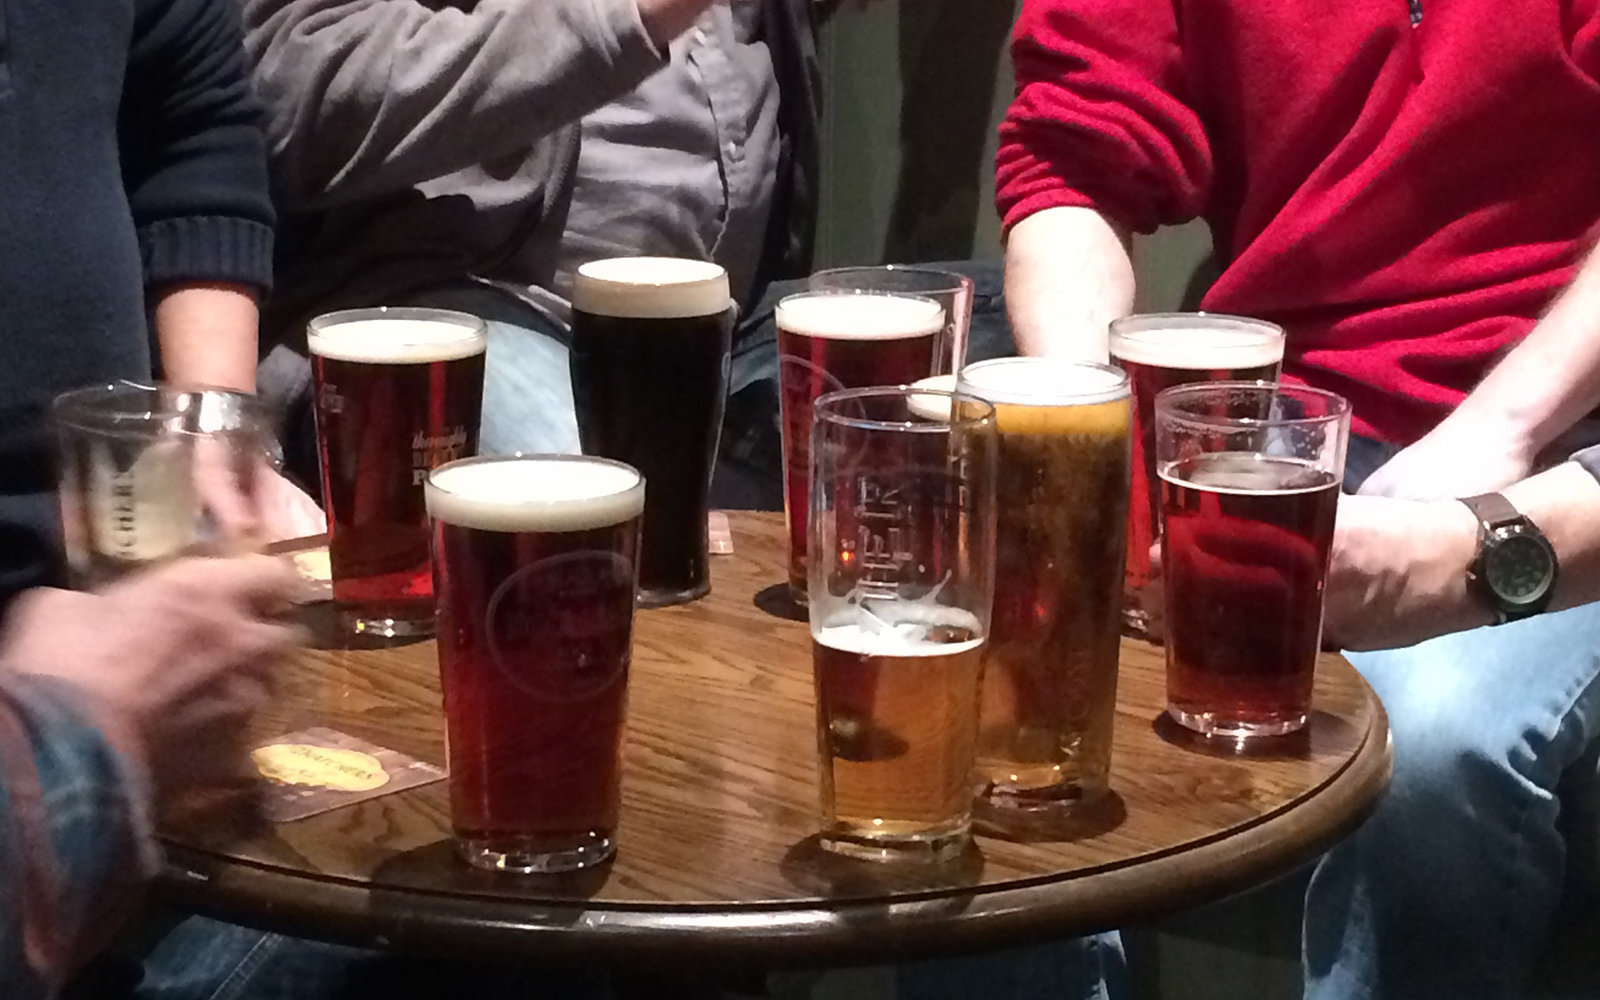 Beer in pub in England